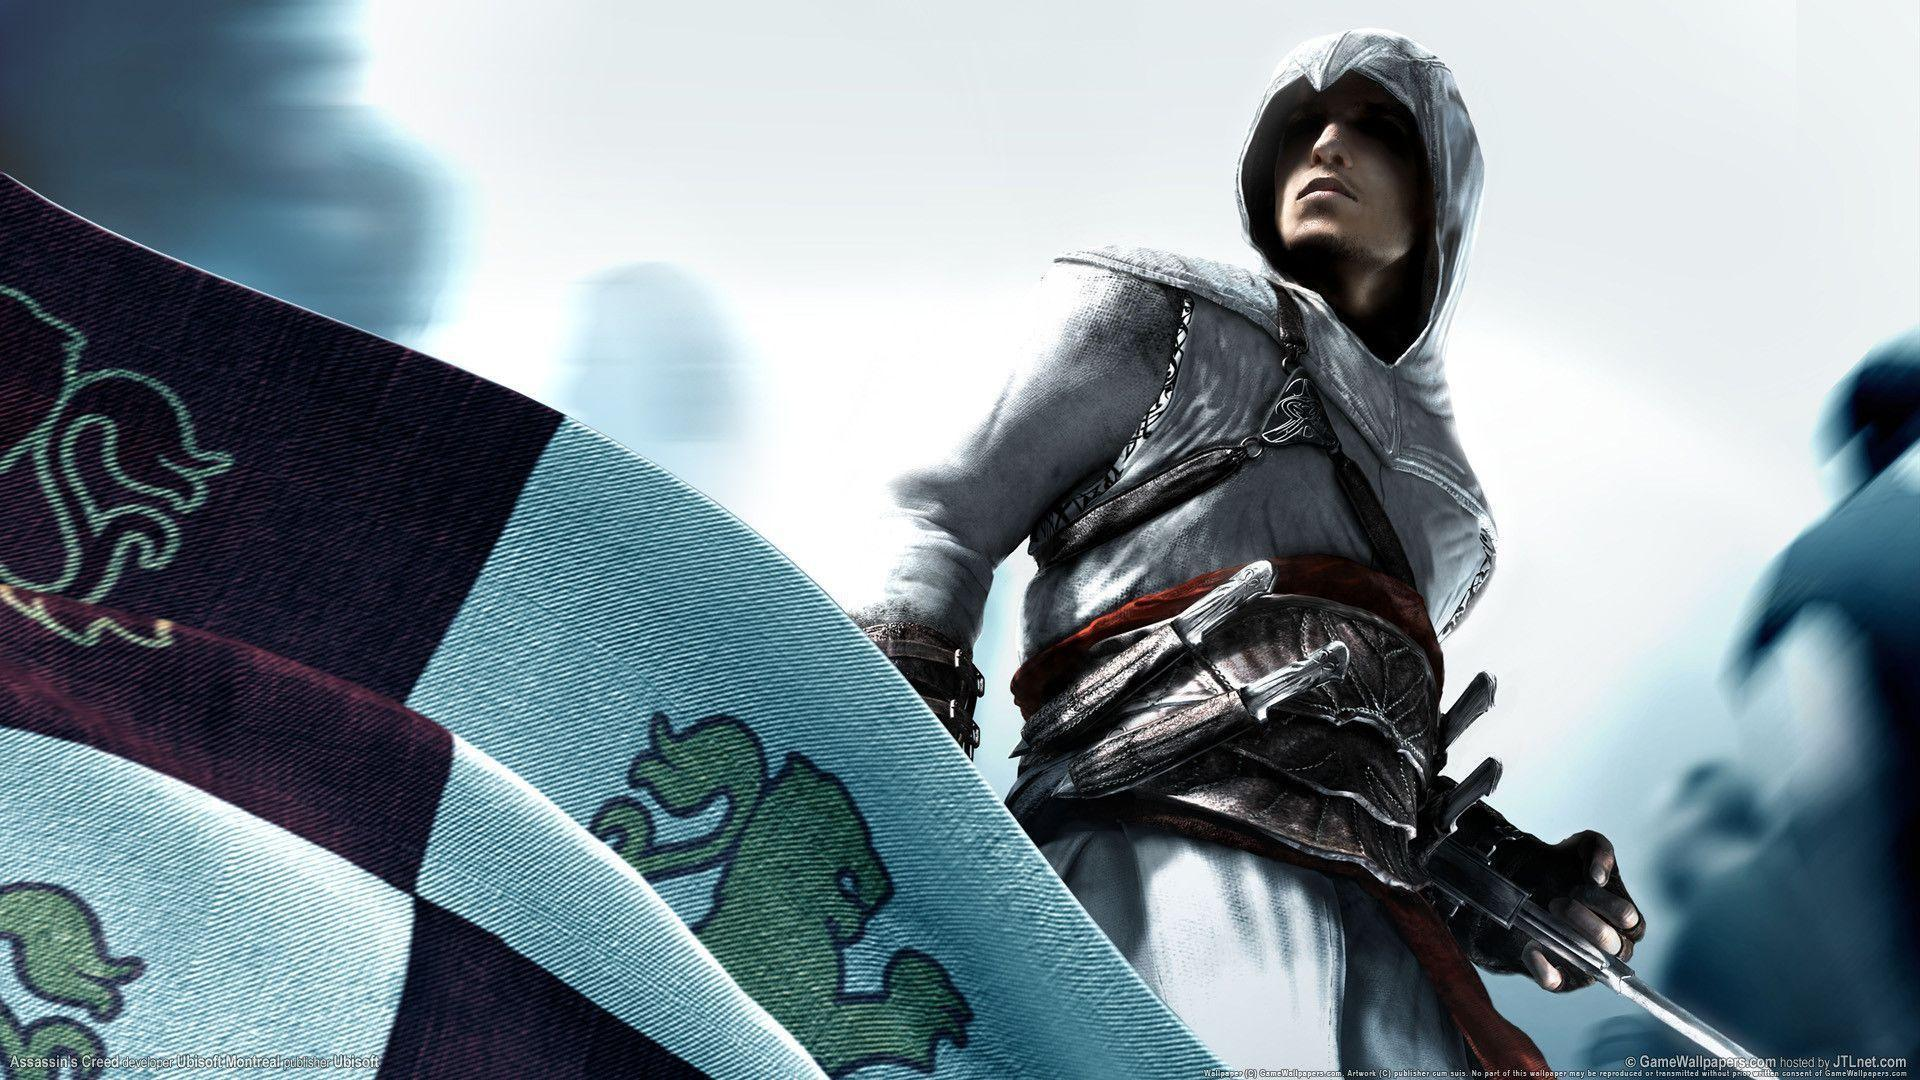 Assassins Creed 1080p Wallpapers   HD Wallpapers